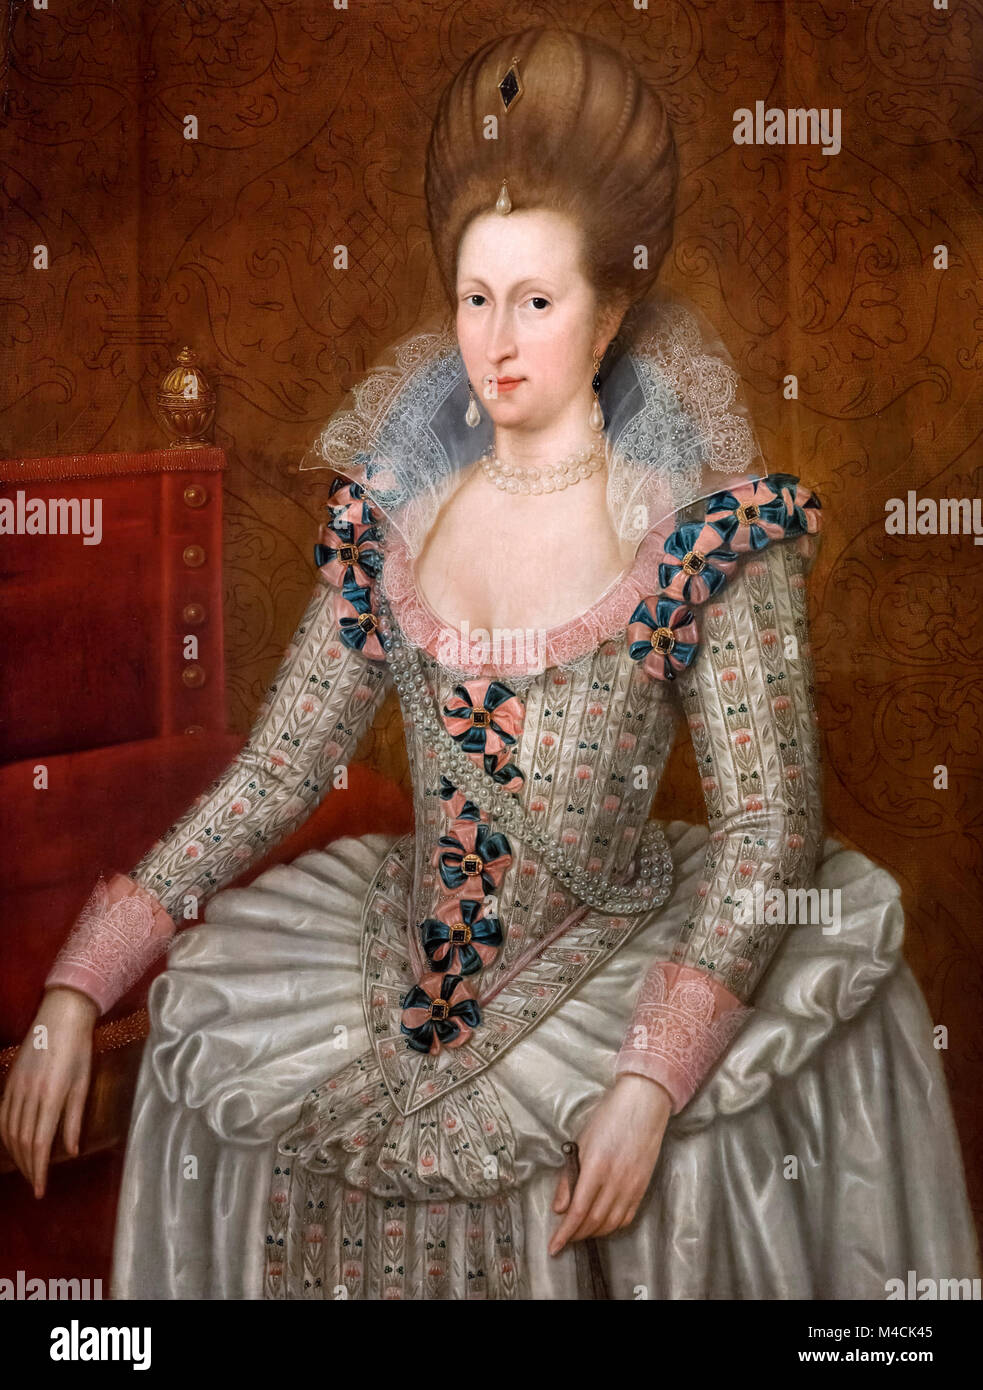 Anne of Denmark, Queen consort of King James I of England and VI of Scotland, by follower of John De Critz the Elder, - Stock Image